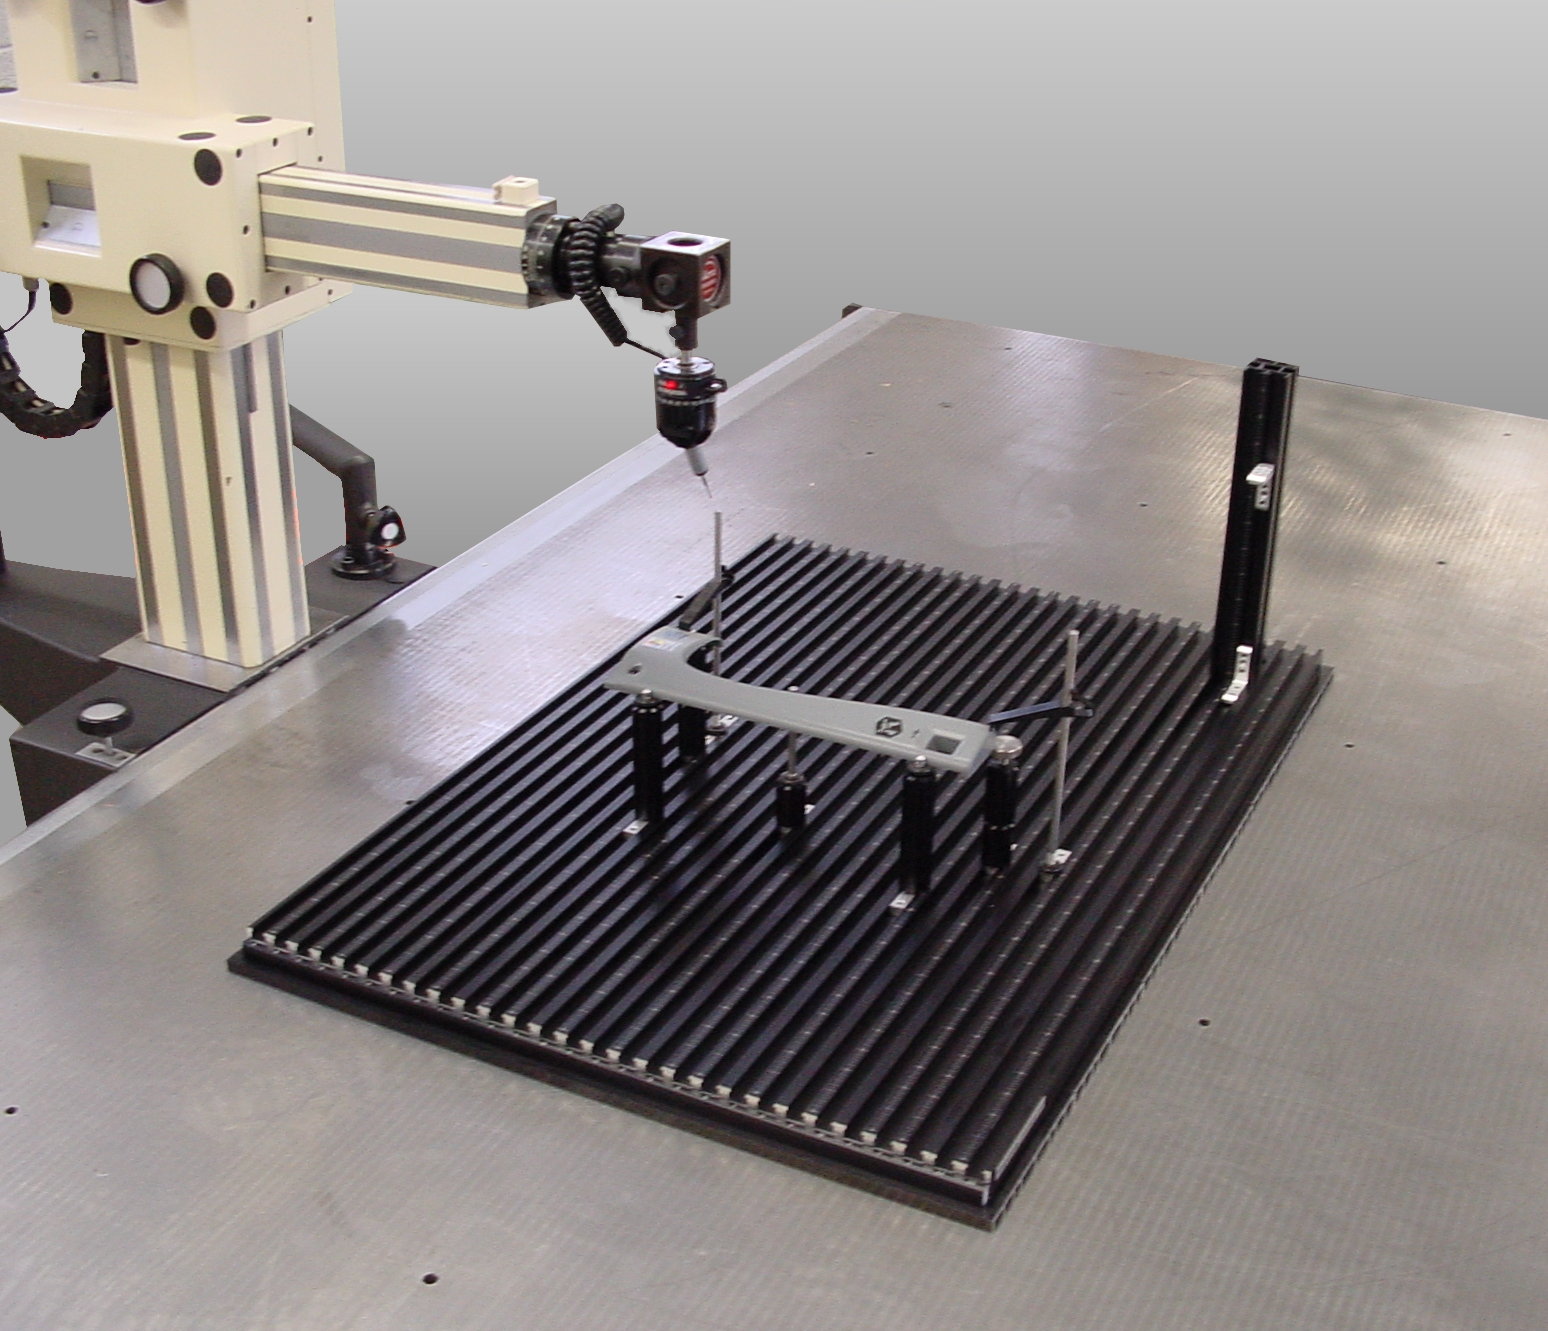 FixLogix Simple Low-Cost CMM Fixture System Now Available